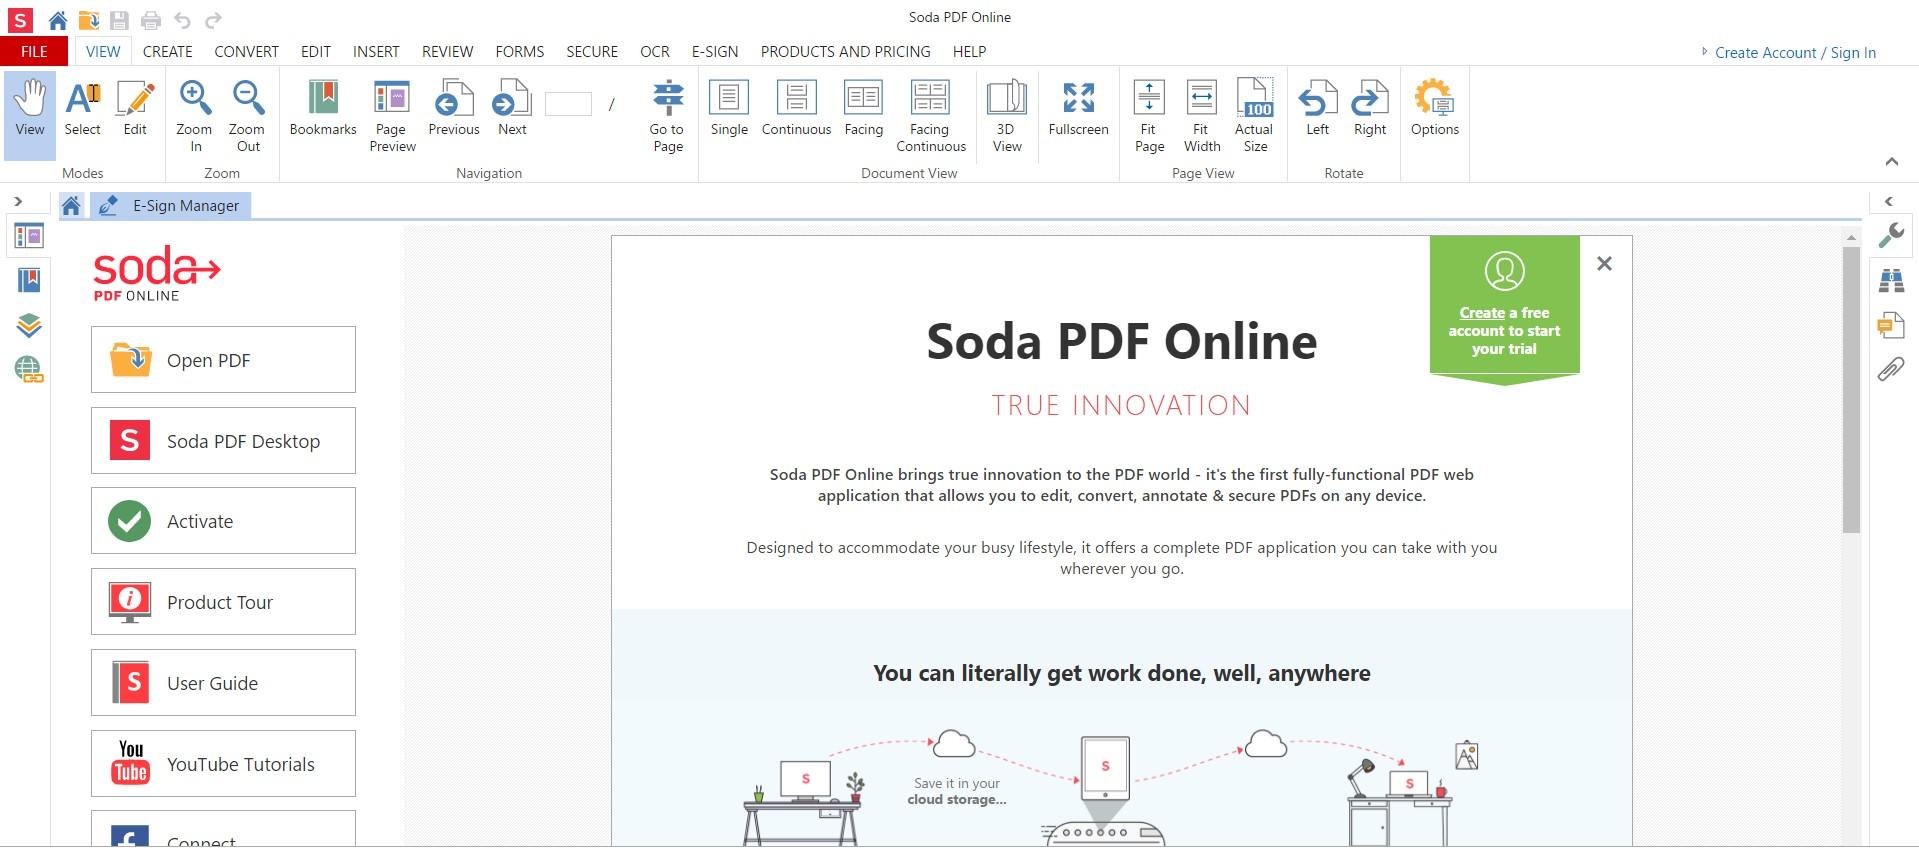 How to convert a PDF Online for Free